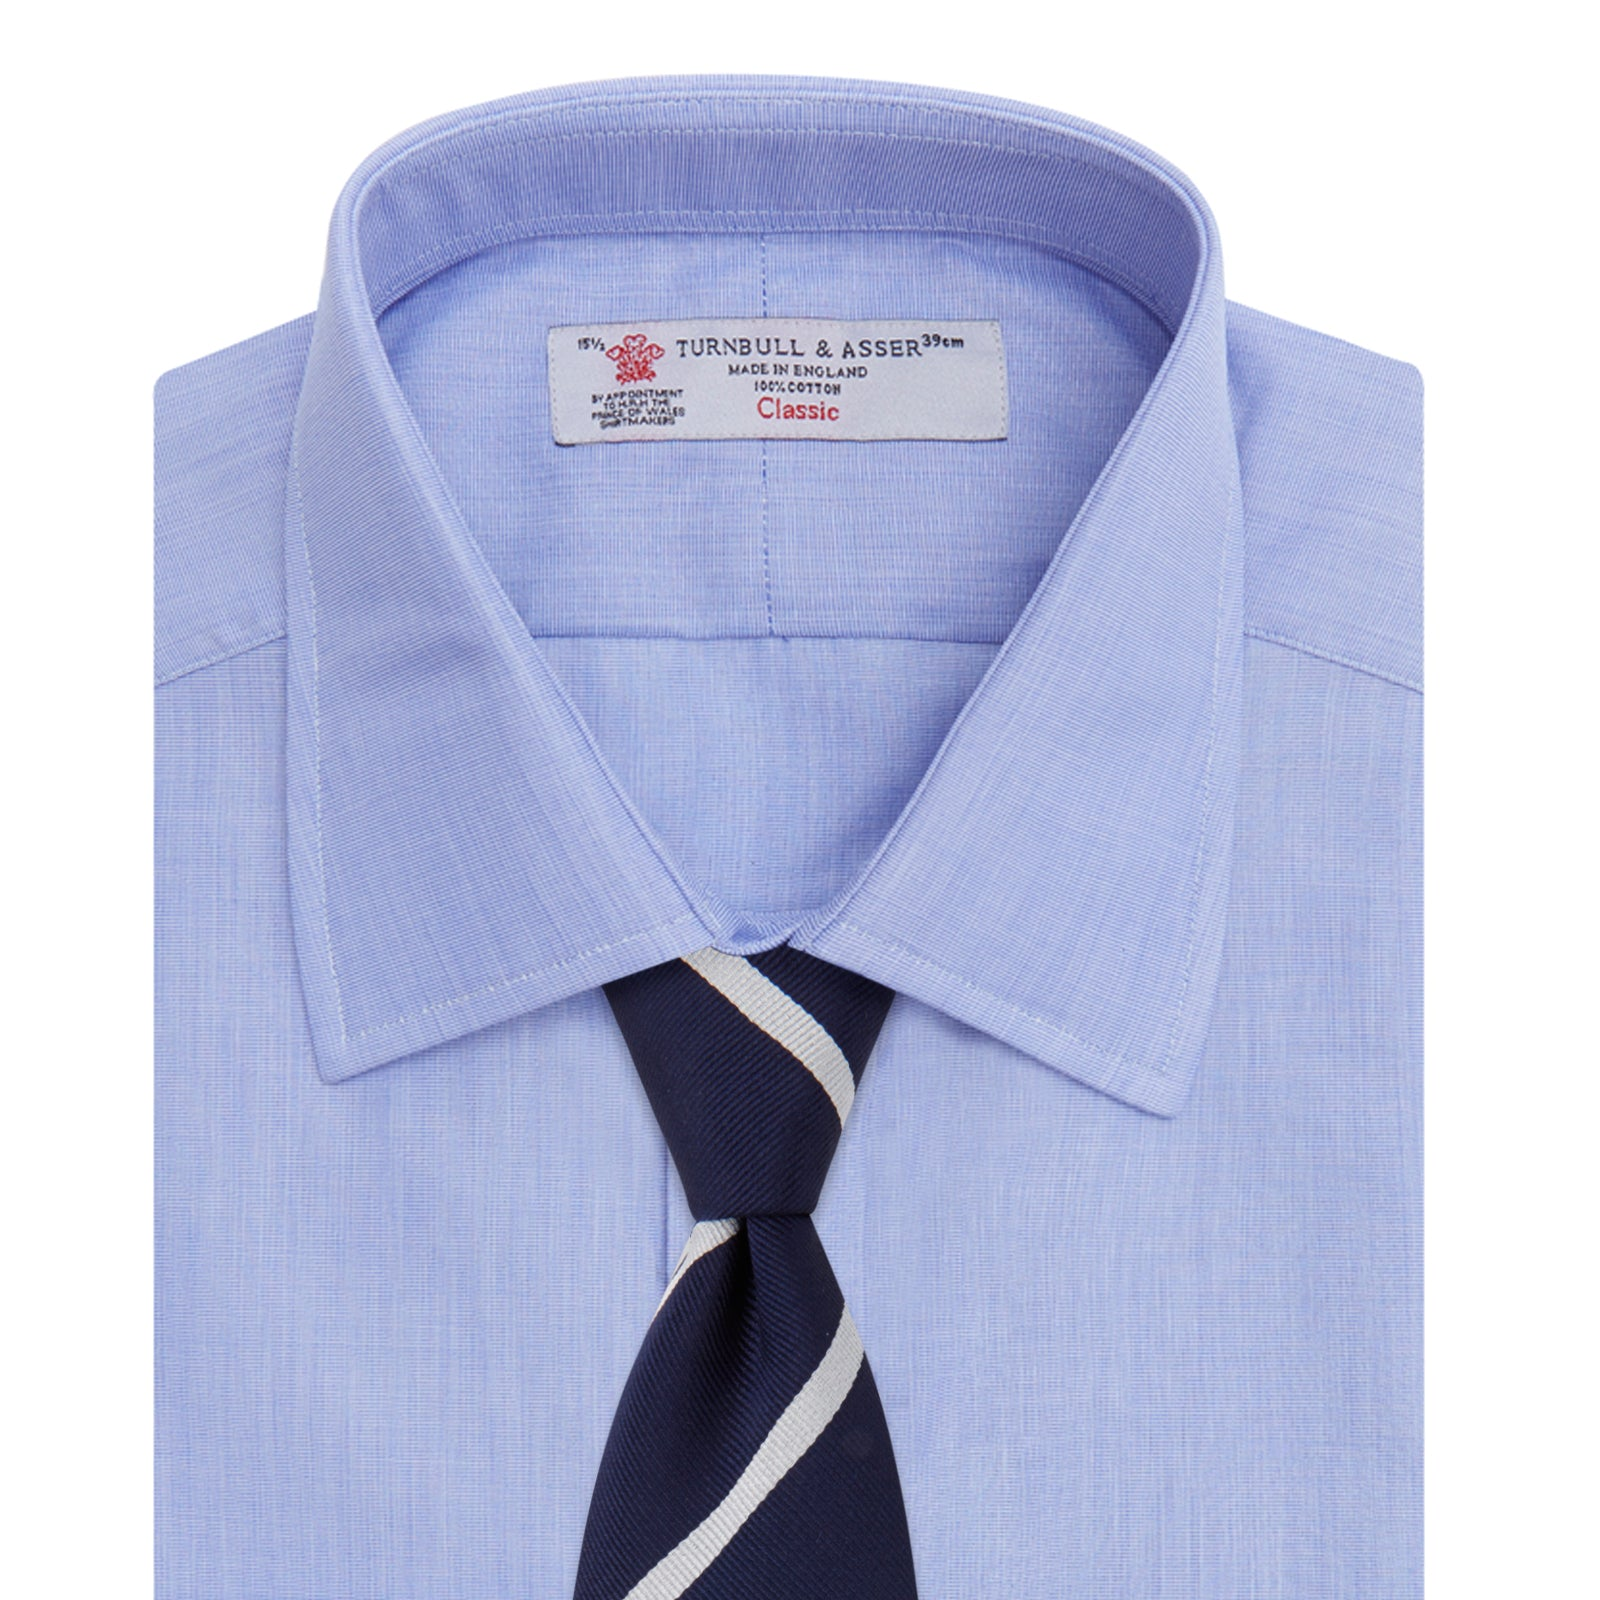 Blue End-on-End Cotton Shirt with T&A Collar and 3-Button Cuffs